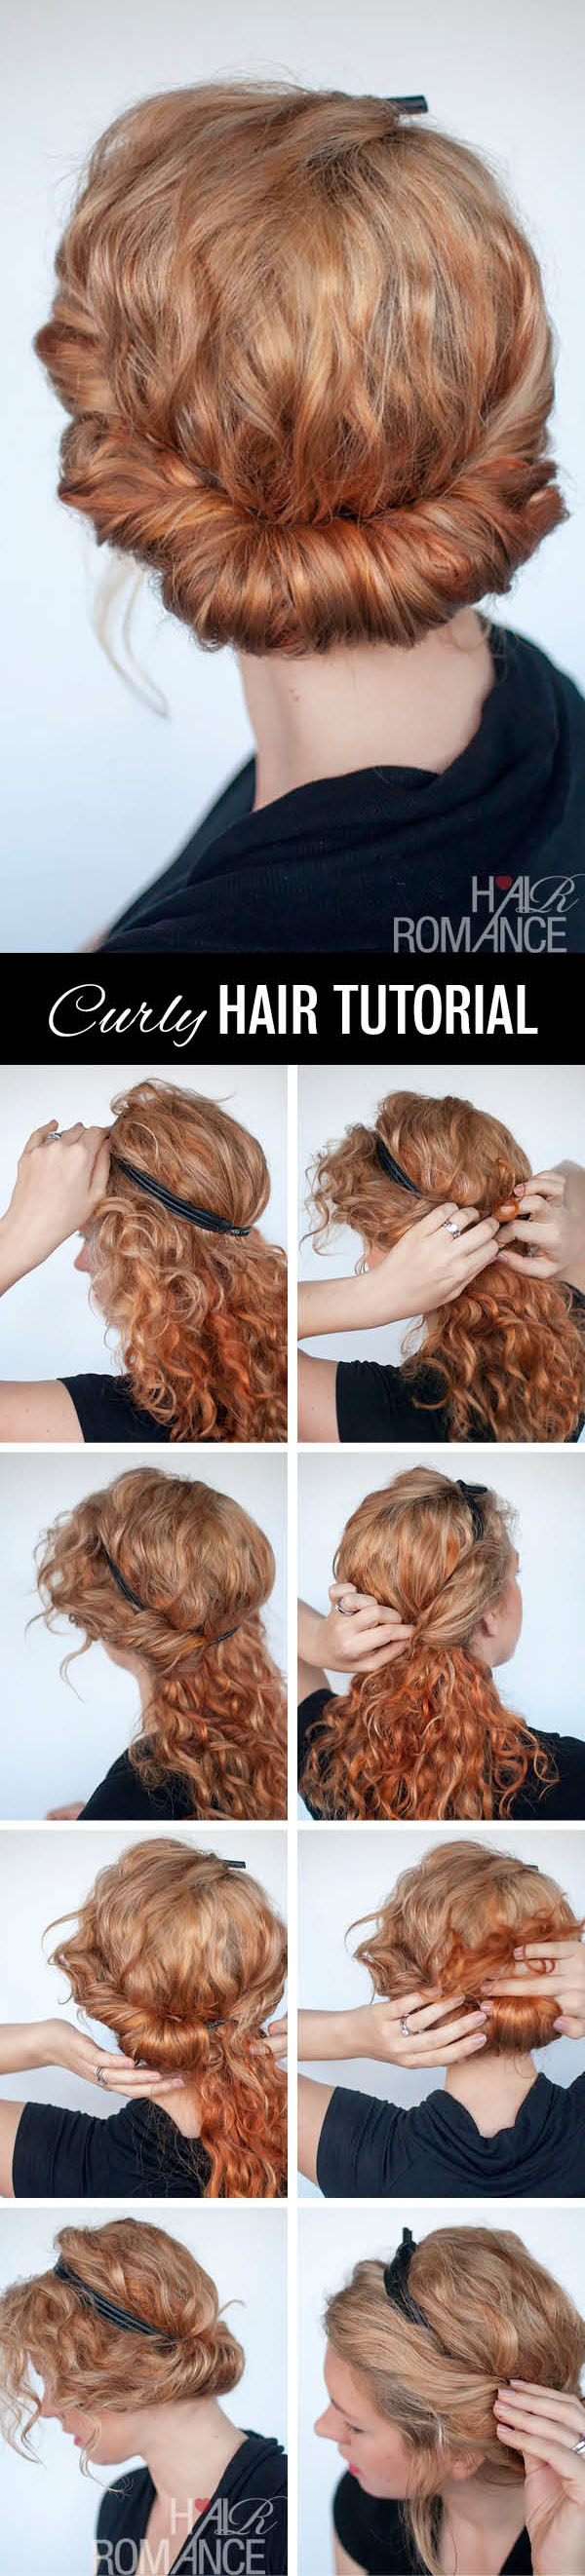 Curly Hairstyle Tutorial Rolled Headband Updo Hair Romance